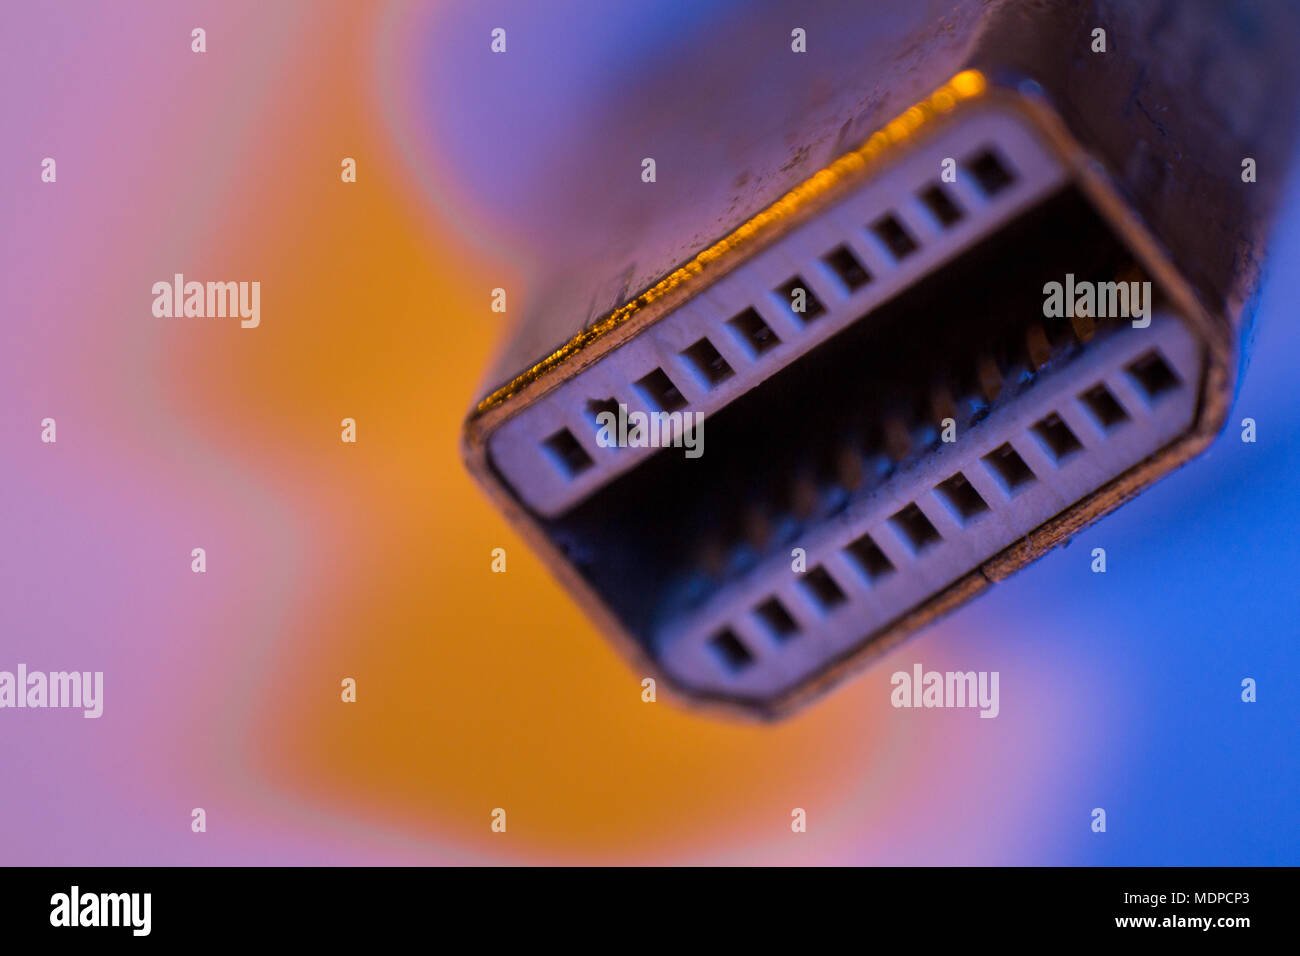 Monitor Signal Cable Stockfotos & Monitor Signal Cable Bilder - Alamy